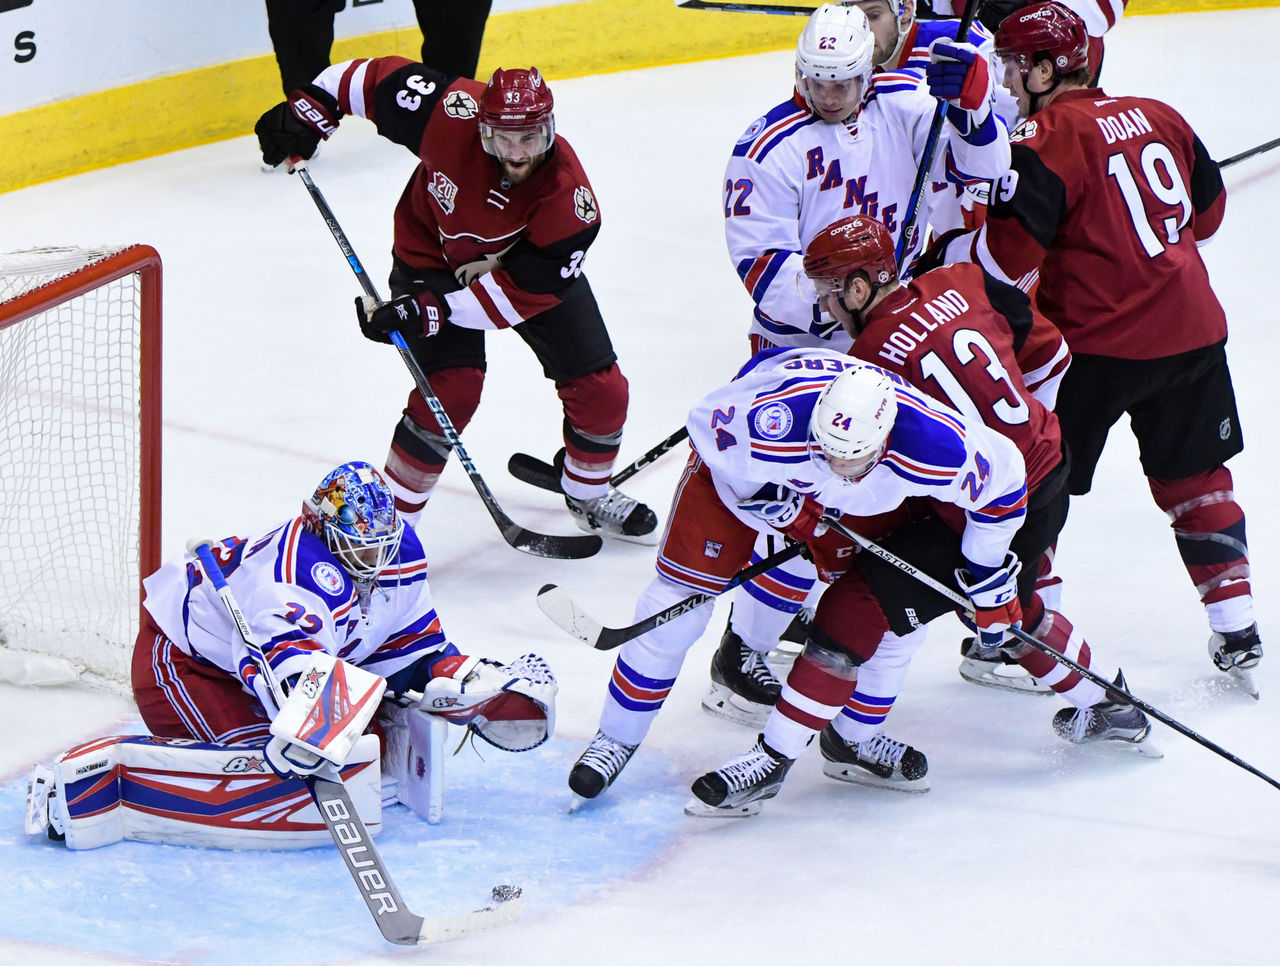 Cropped 2016 12 30t041204z 1195955231 nocid rtrmadp 3 nhl new york rangers at arizona coyotes